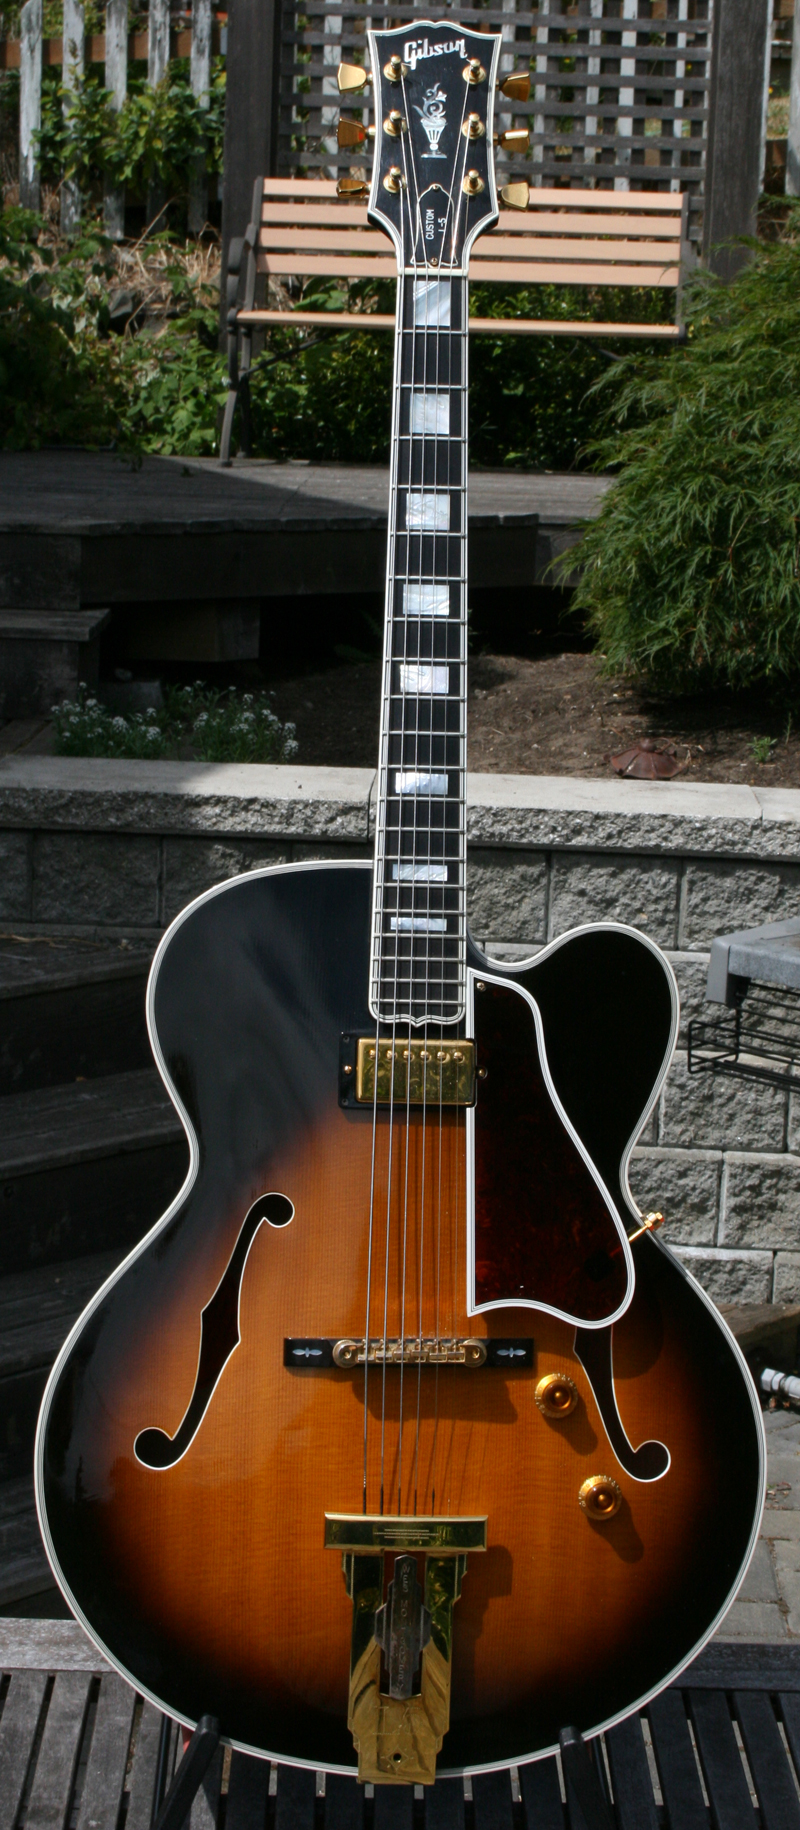 1996 Gibson L-5 Wes Montgomery with original hardshell